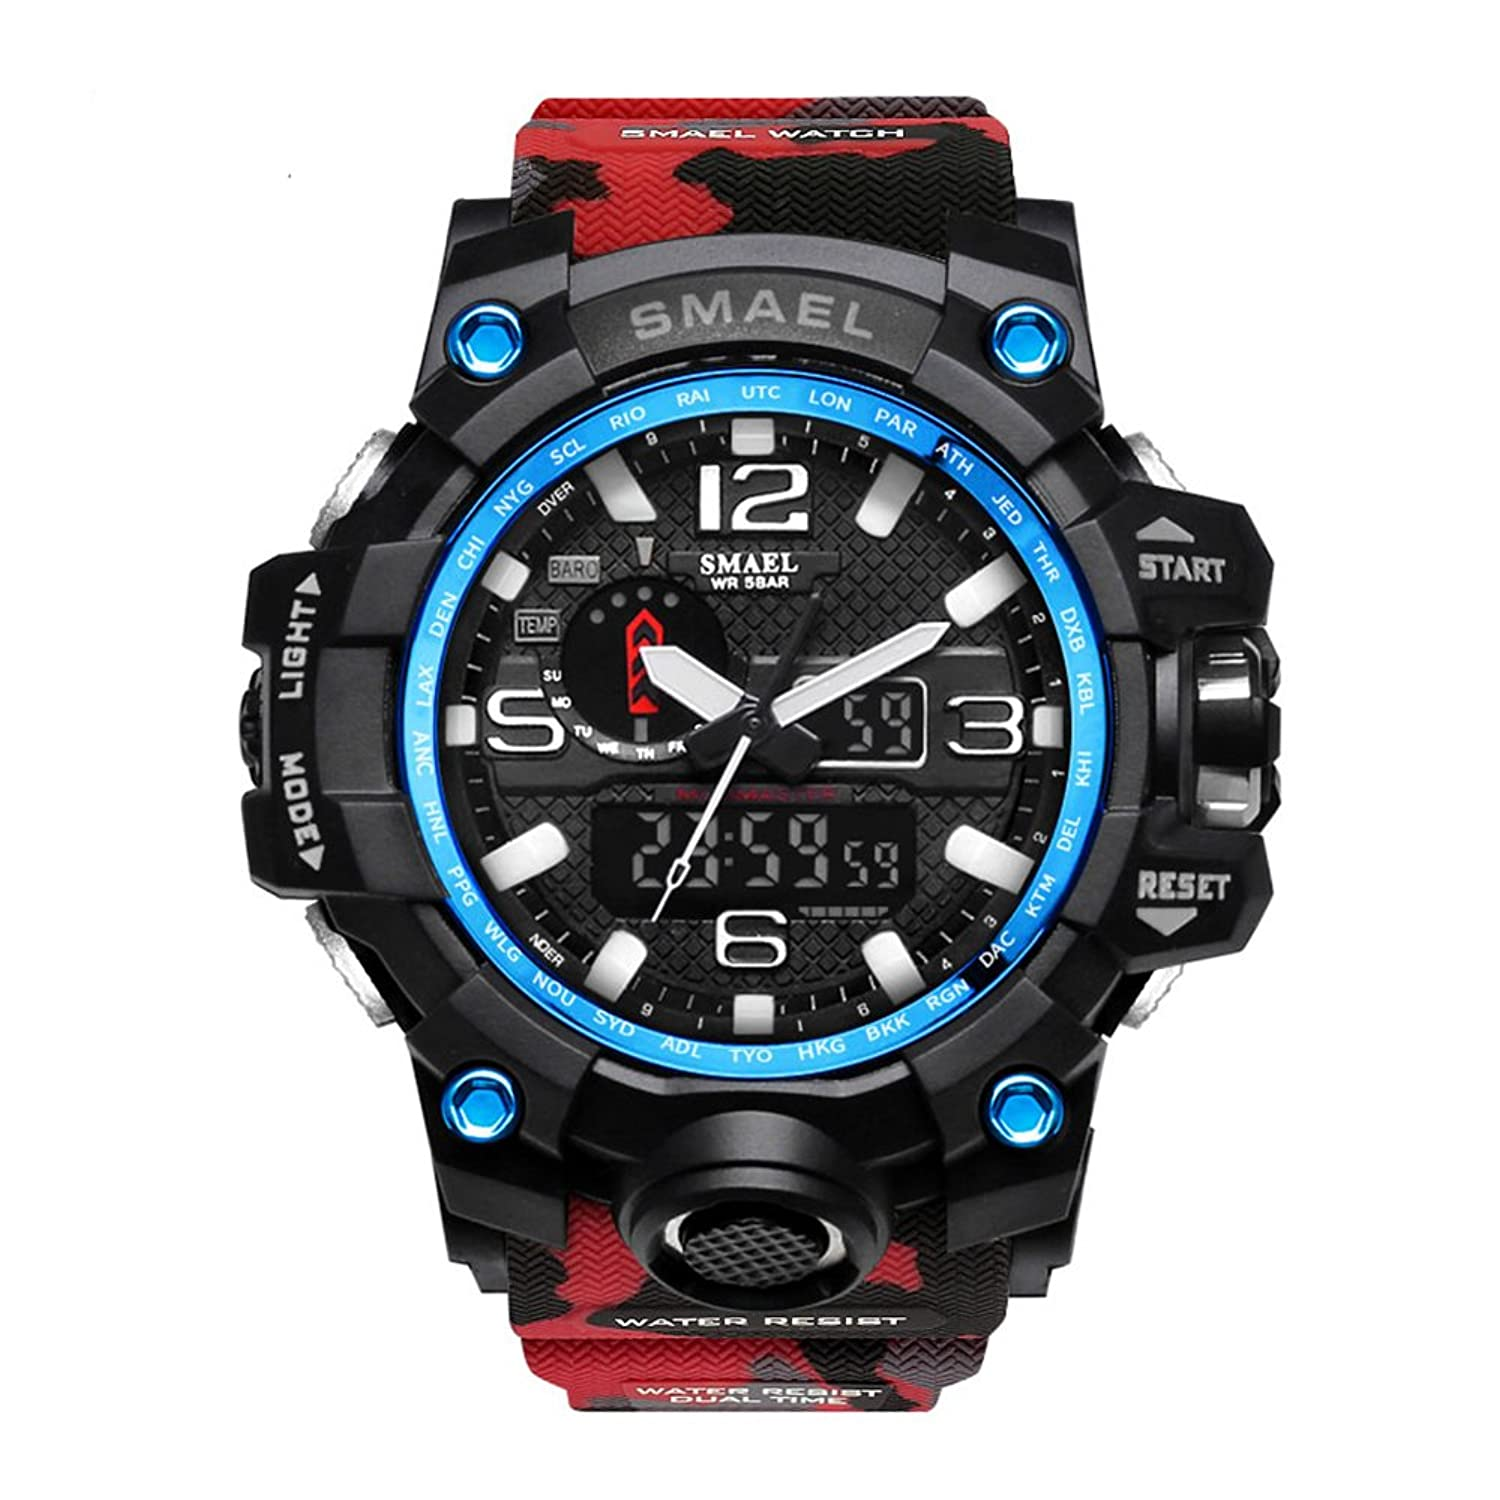 Amazon.com: Men Digital Watch Large Electronic Wristwatch Stopwatch Red Camo: Watches